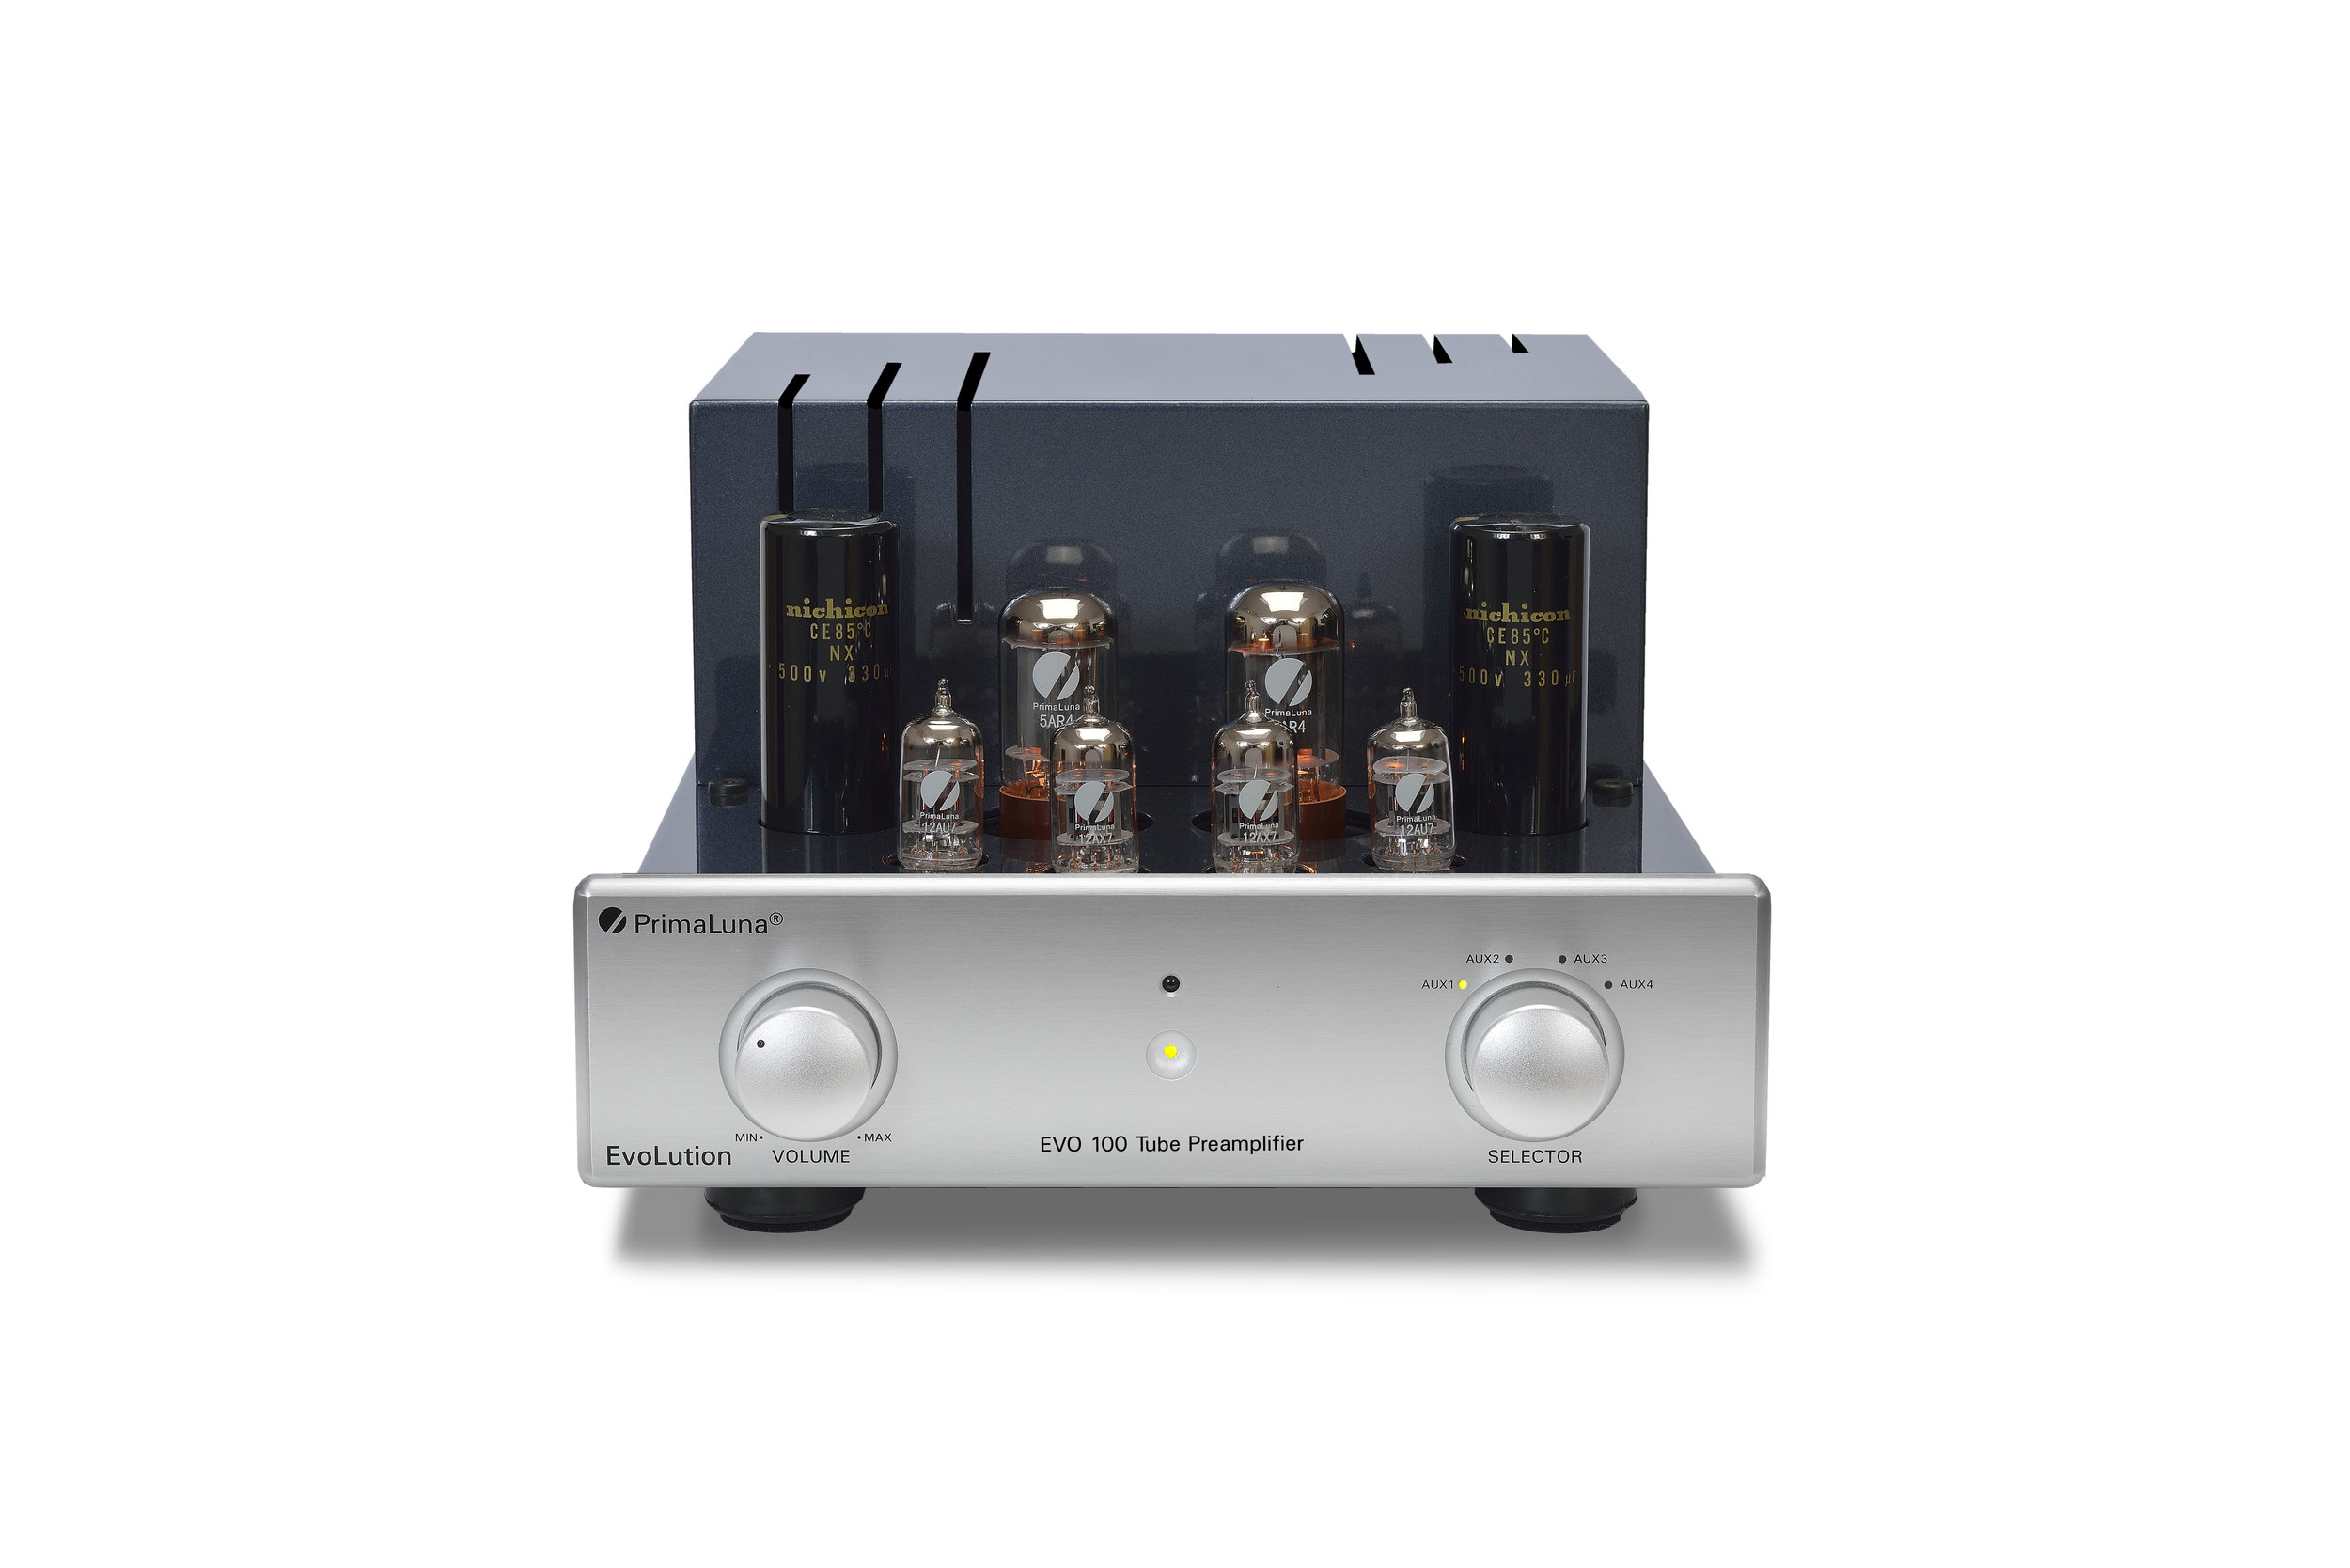 151b - PrimaLuna EVO 100 Tube Preamplifier - silver - front - without cage - white background.jpg